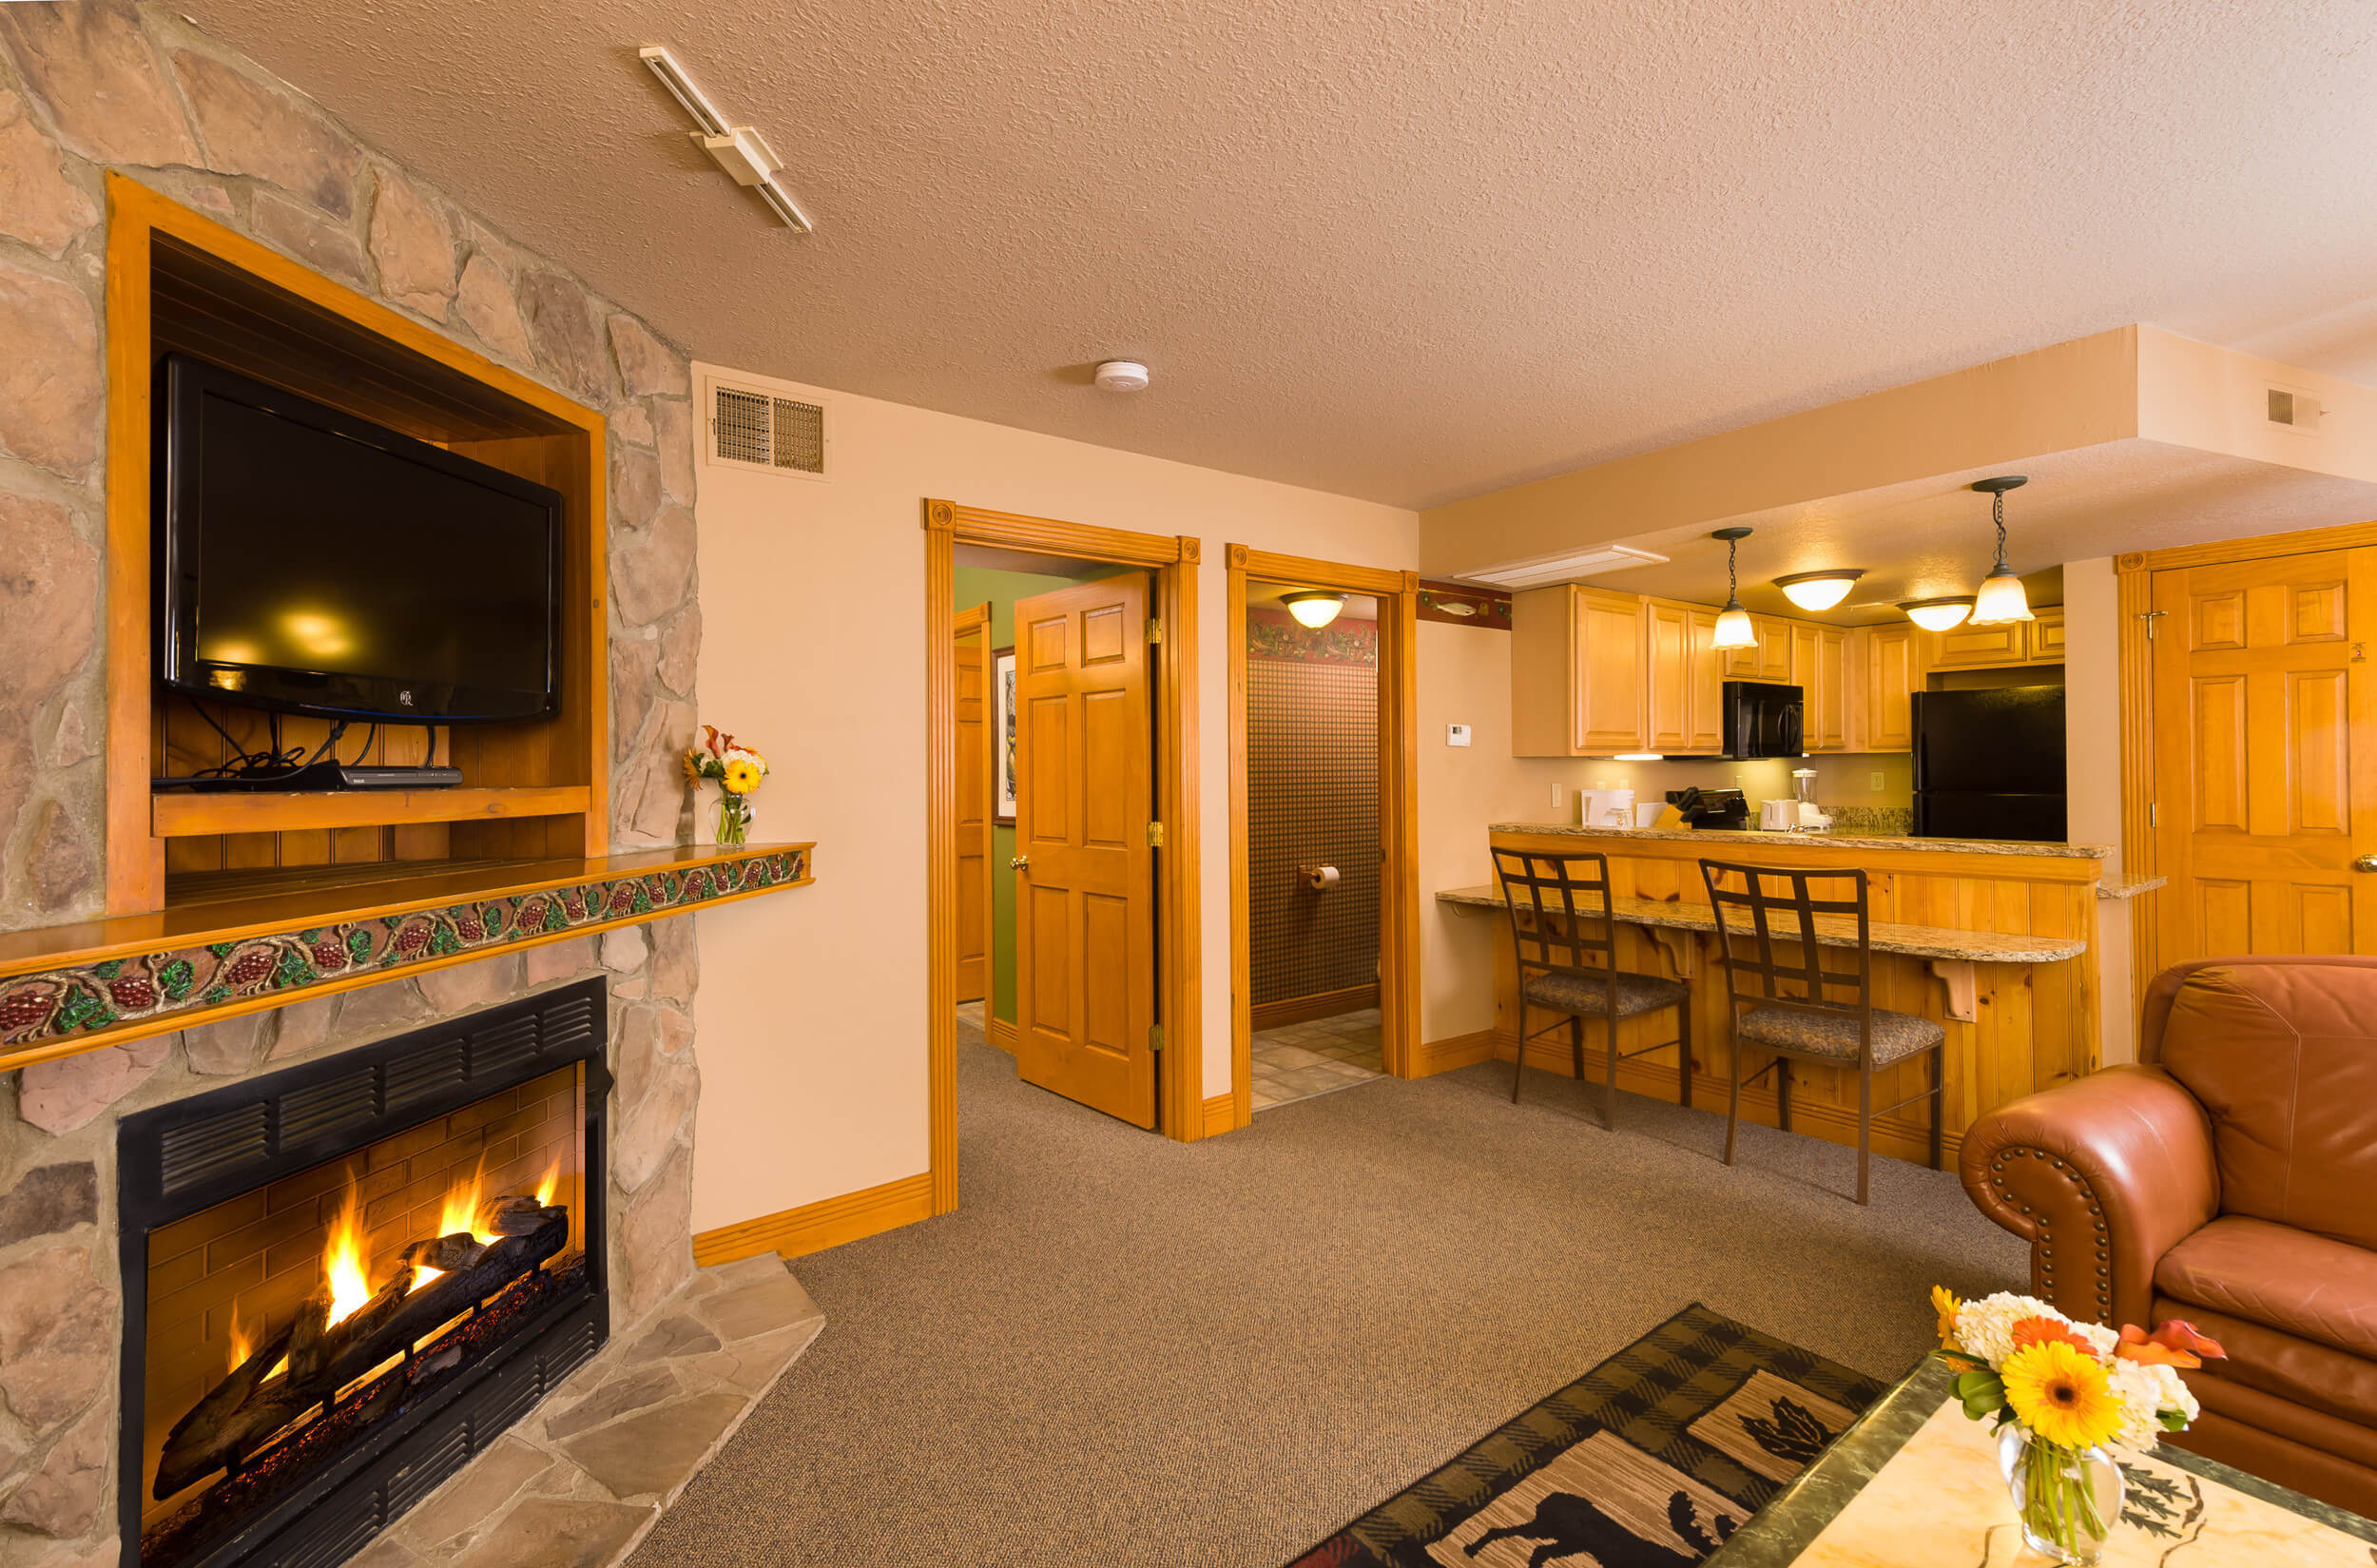 Two Bedroom Villa Westgate Smoky Mountain Resort Spa Westgate Resorts In Gatlinburg